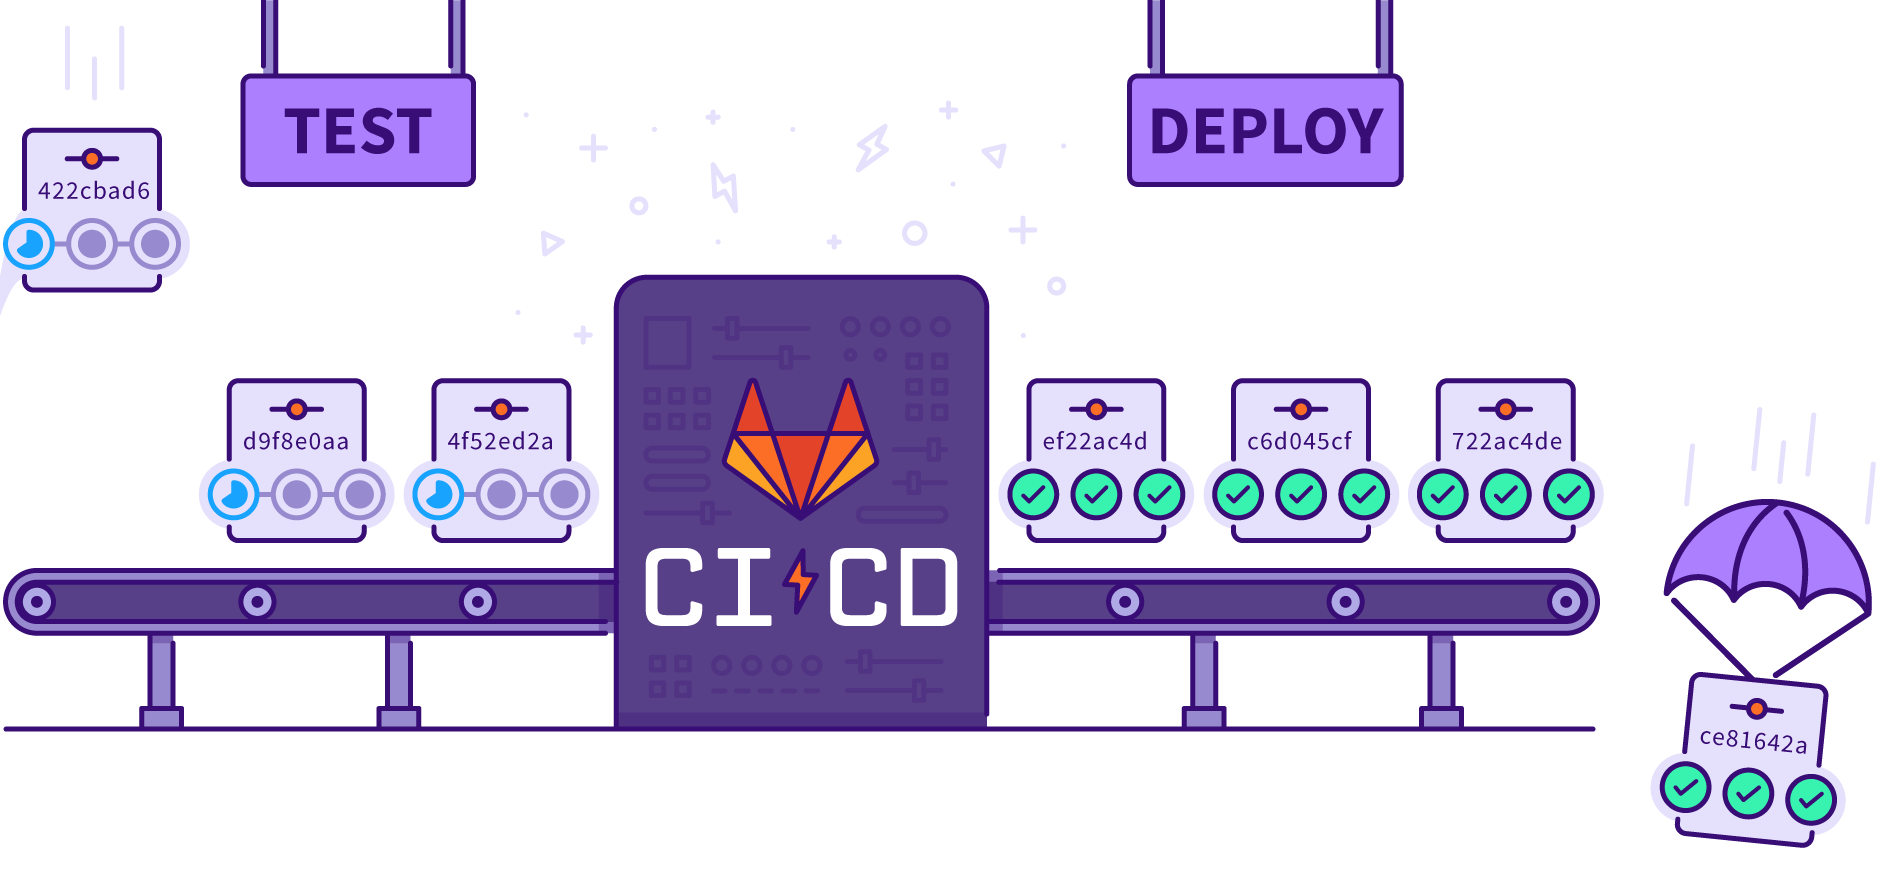 In Search of the Best Continuous Deployment Service